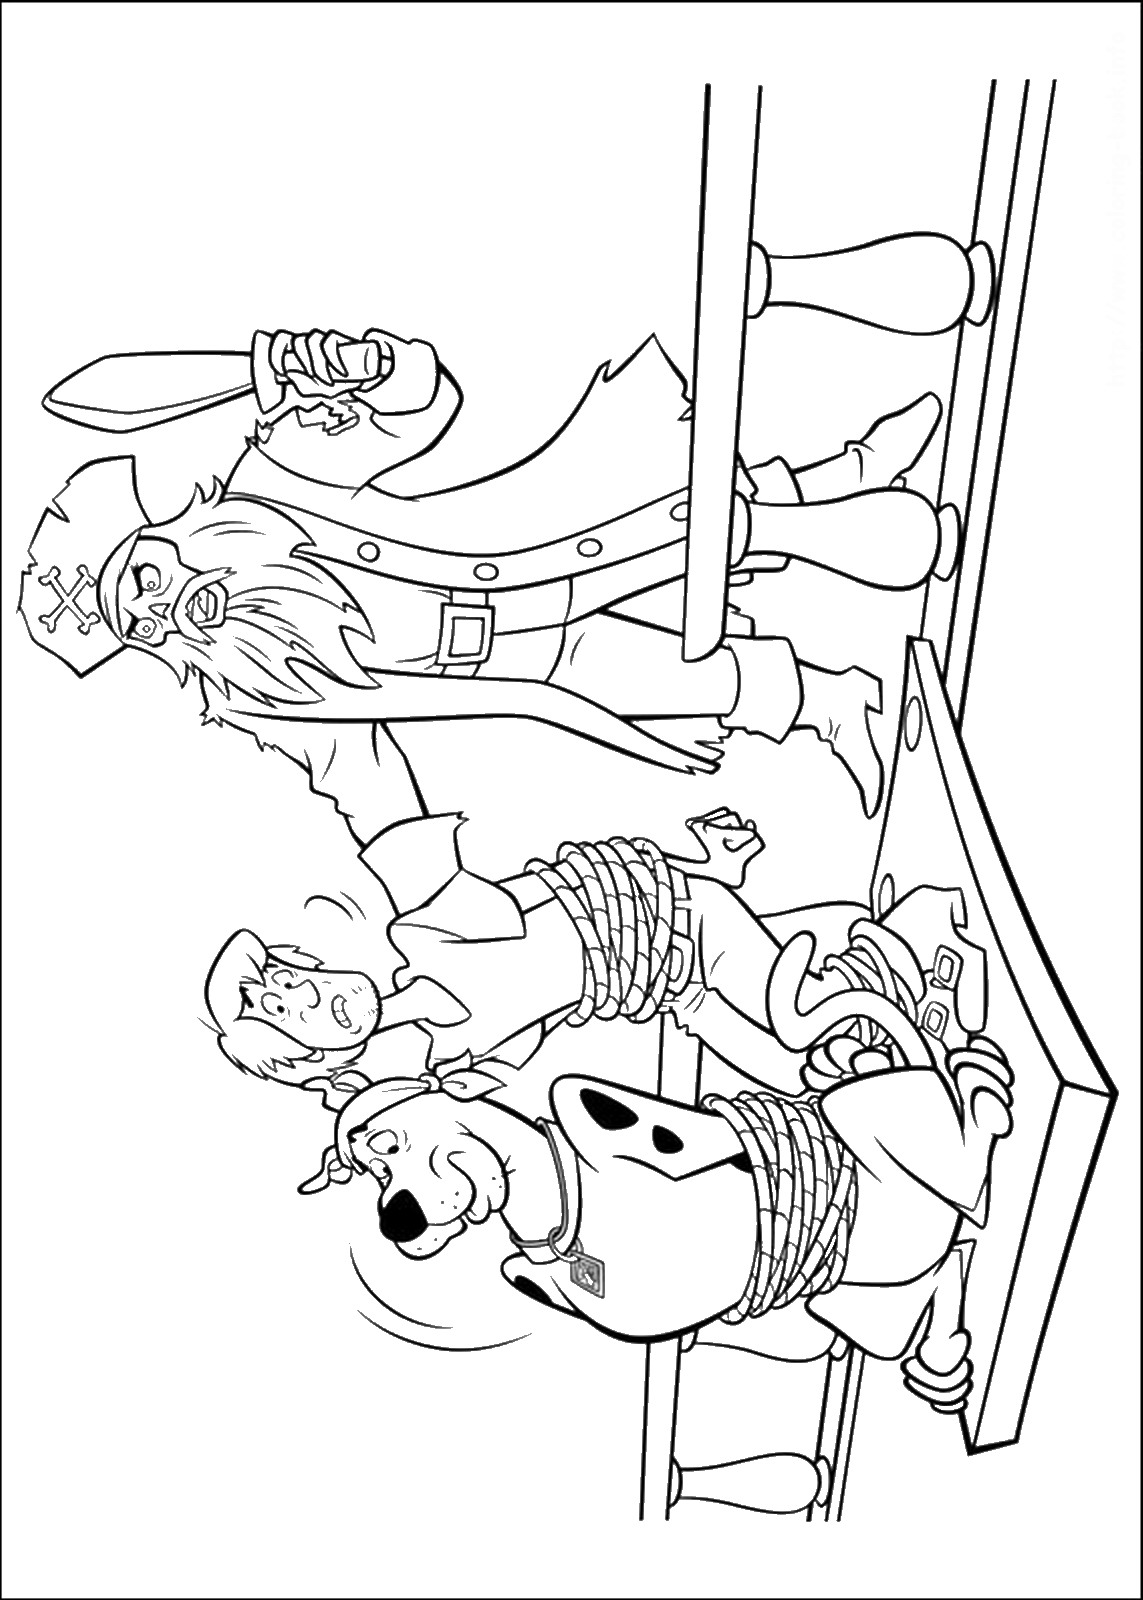 scooby doo pictures to print 30 free printable scooby doo coloring pages doo scooby to pictures print